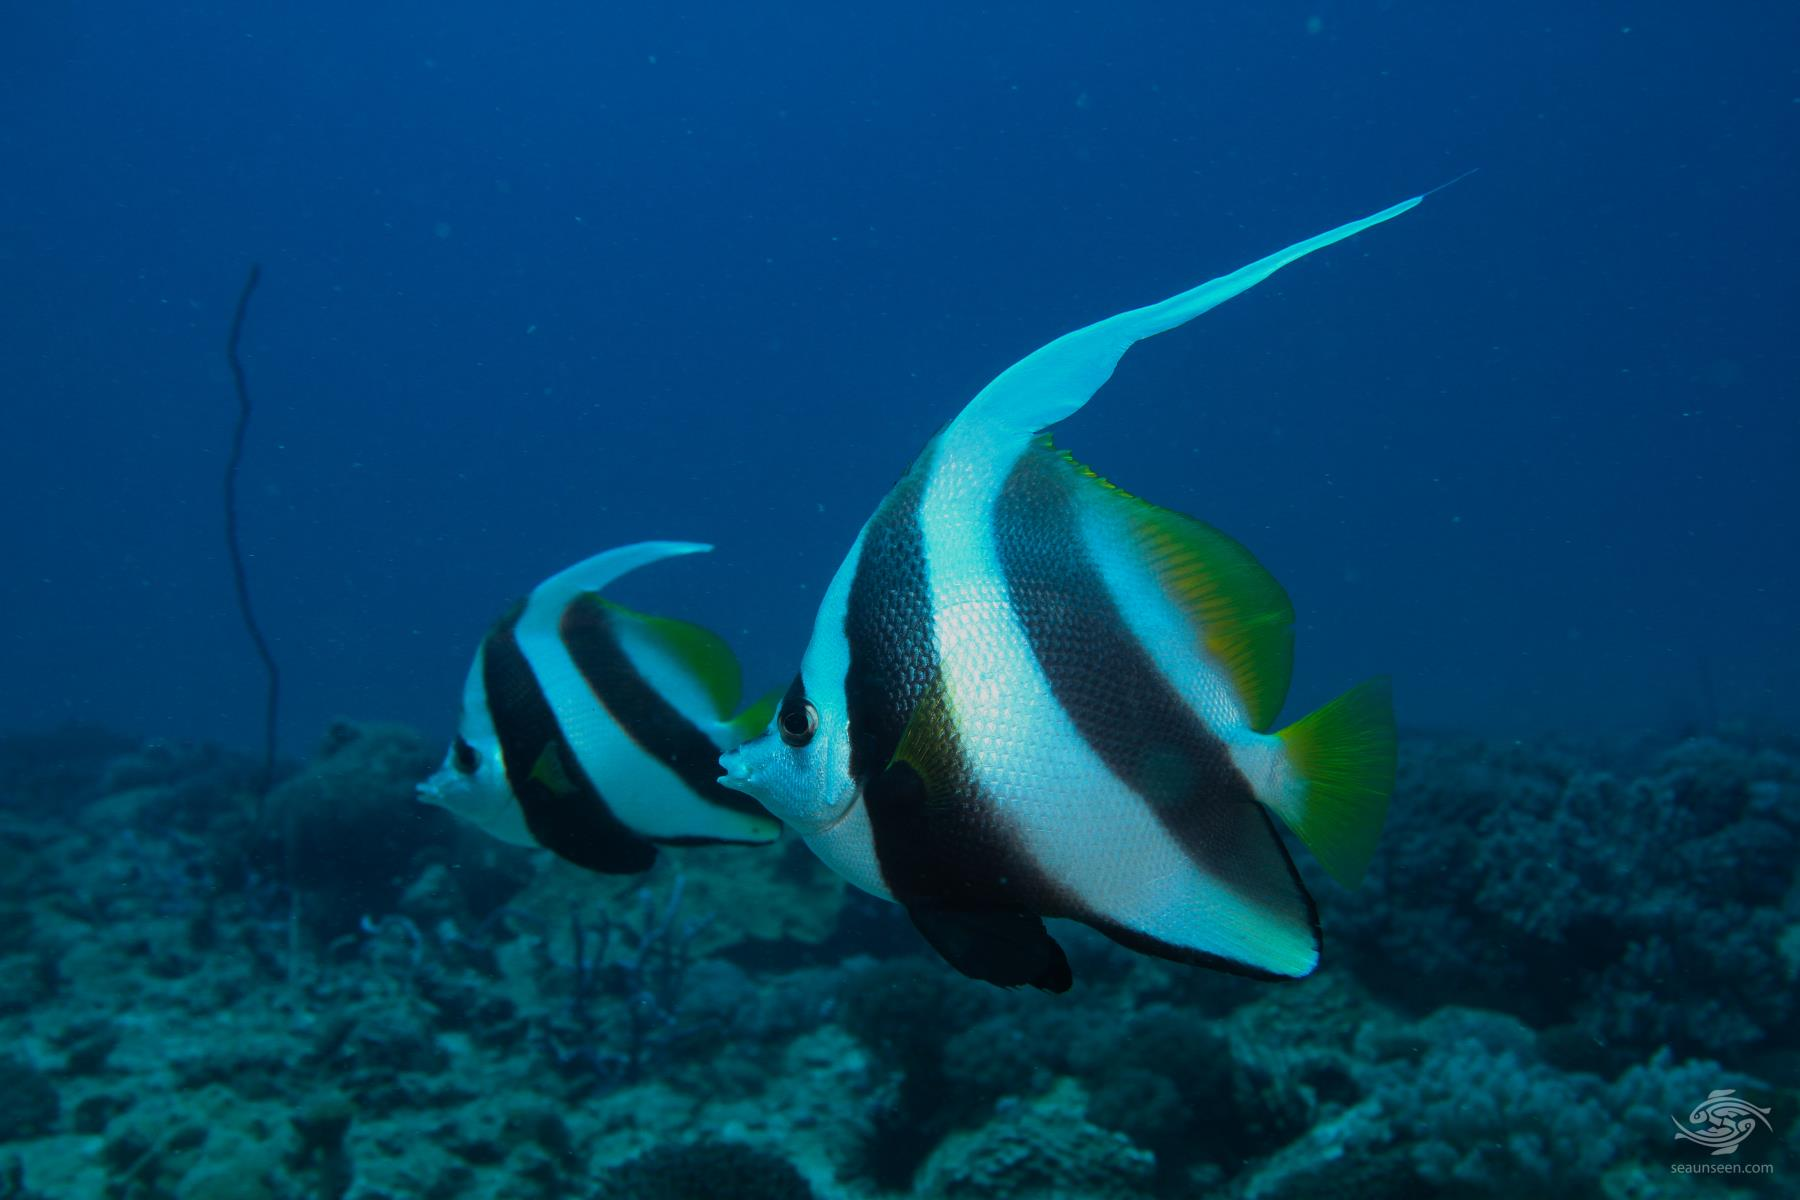 Longfin A pair of longfin bannerfish Heniochus acuminatus on Kankadya reef Tanzania